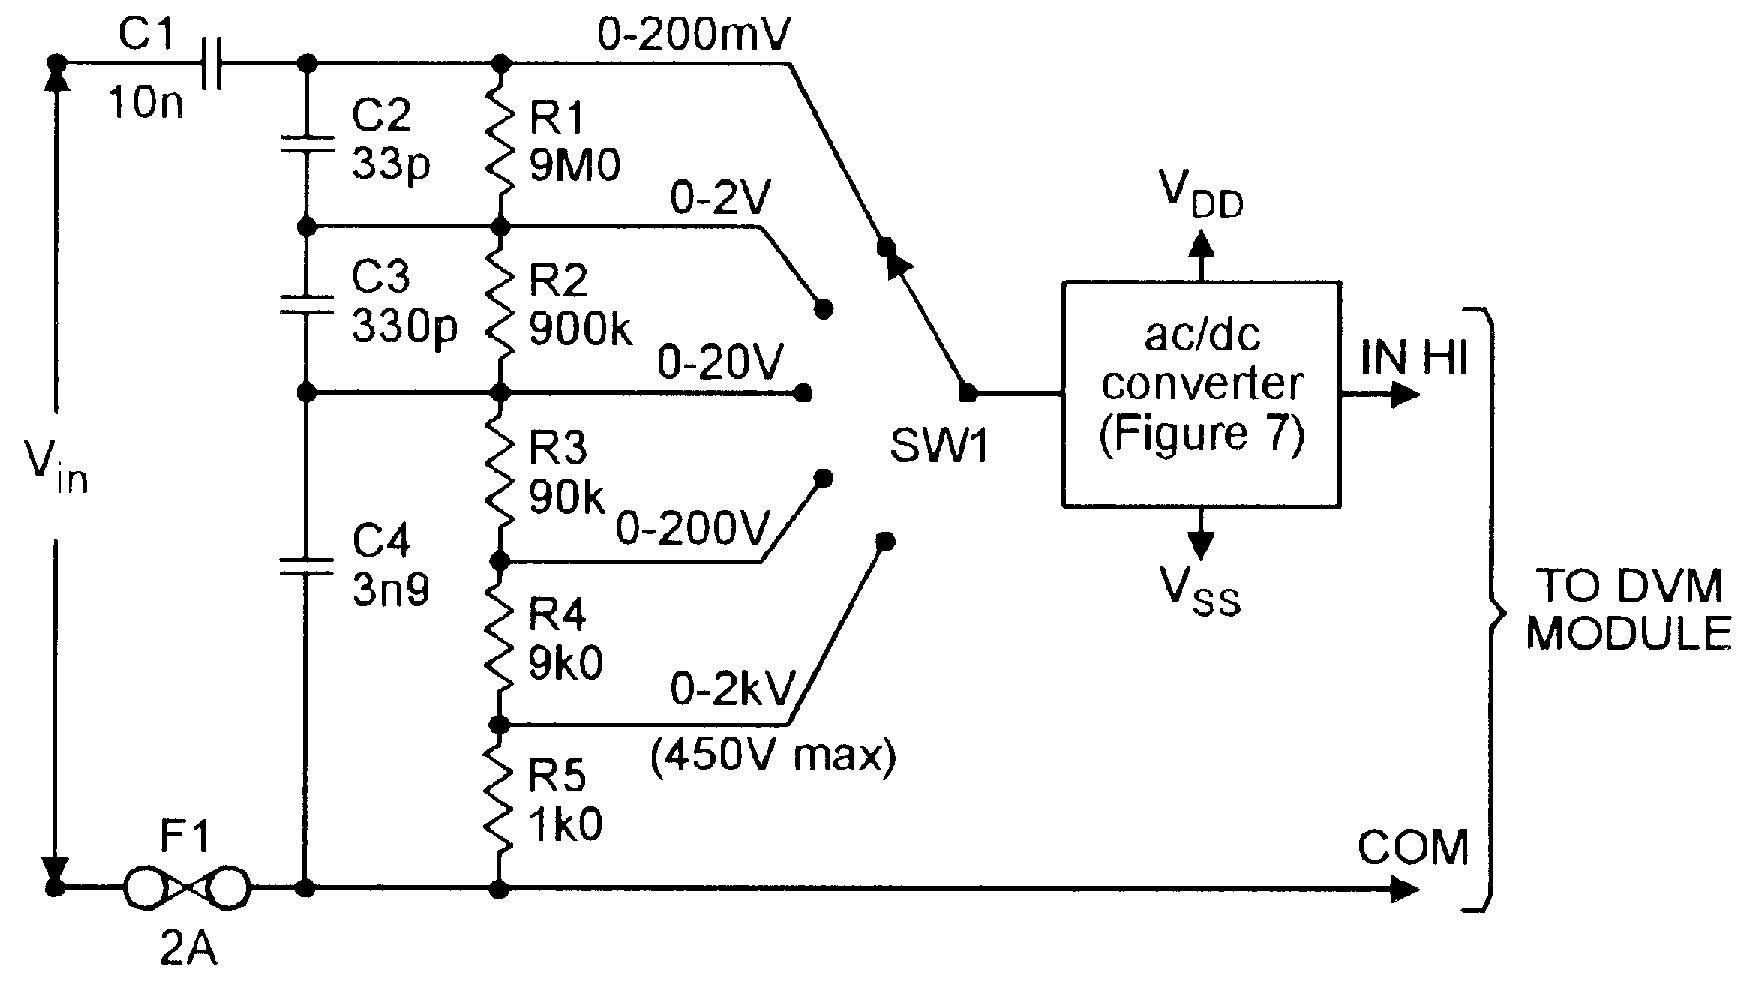 Op Amp Cookbook Part 4 Nuts Volts Magazine Figure 2 Shows A Standard 3 Way Circuit With The 8 Five Range Ac Voltmeter Converter For Use Dvm Modules